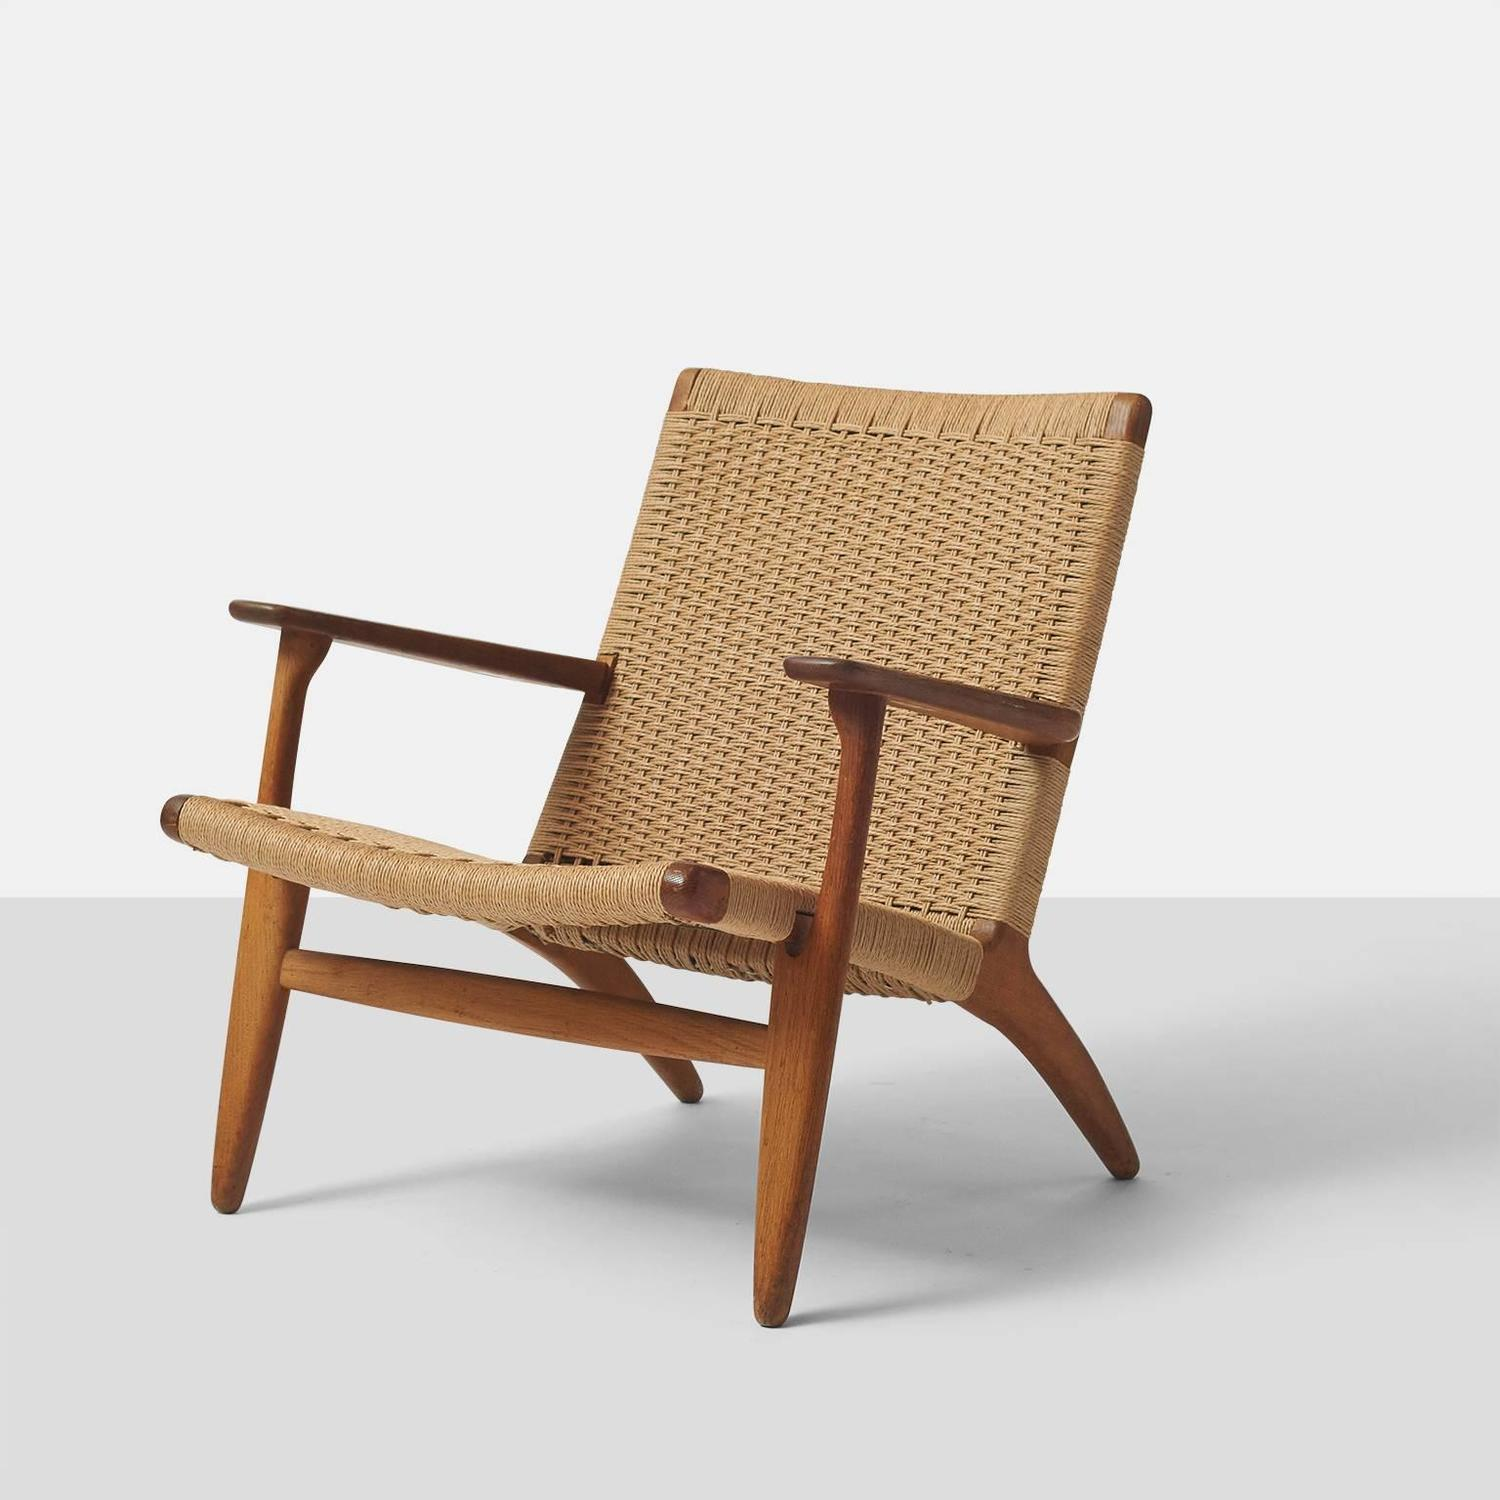 pair of hans wegner ch25 lounge chairs at 1stdibs. Black Bedroom Furniture Sets. Home Design Ideas